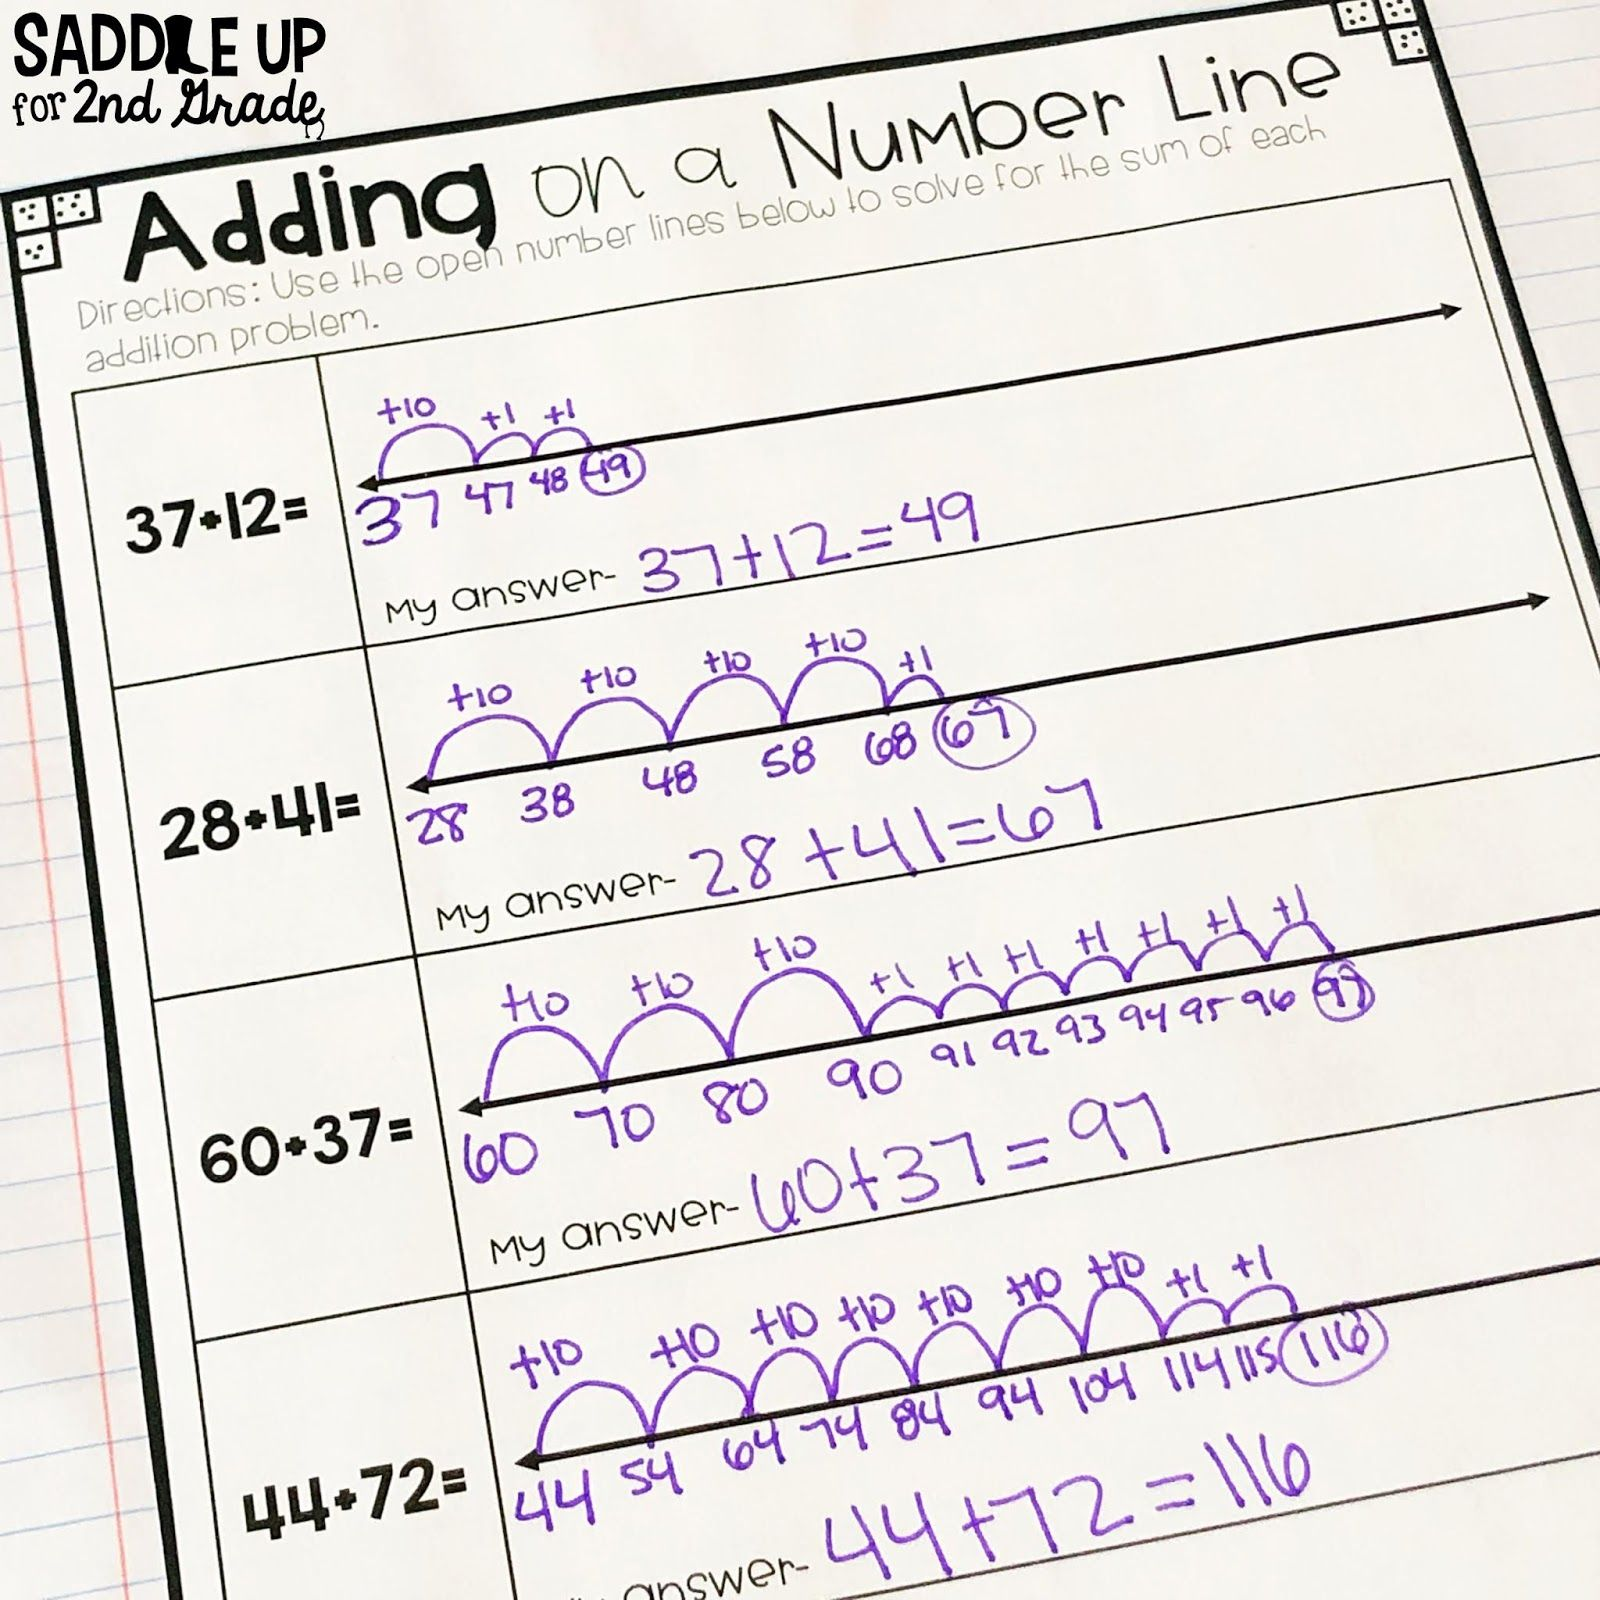 Addition Strategies 4 Methods For Teaching Two Digit Addition Saddle Up For 2nd Grade Addition Strategies Teaching Addition Number Line Digit addition on number line